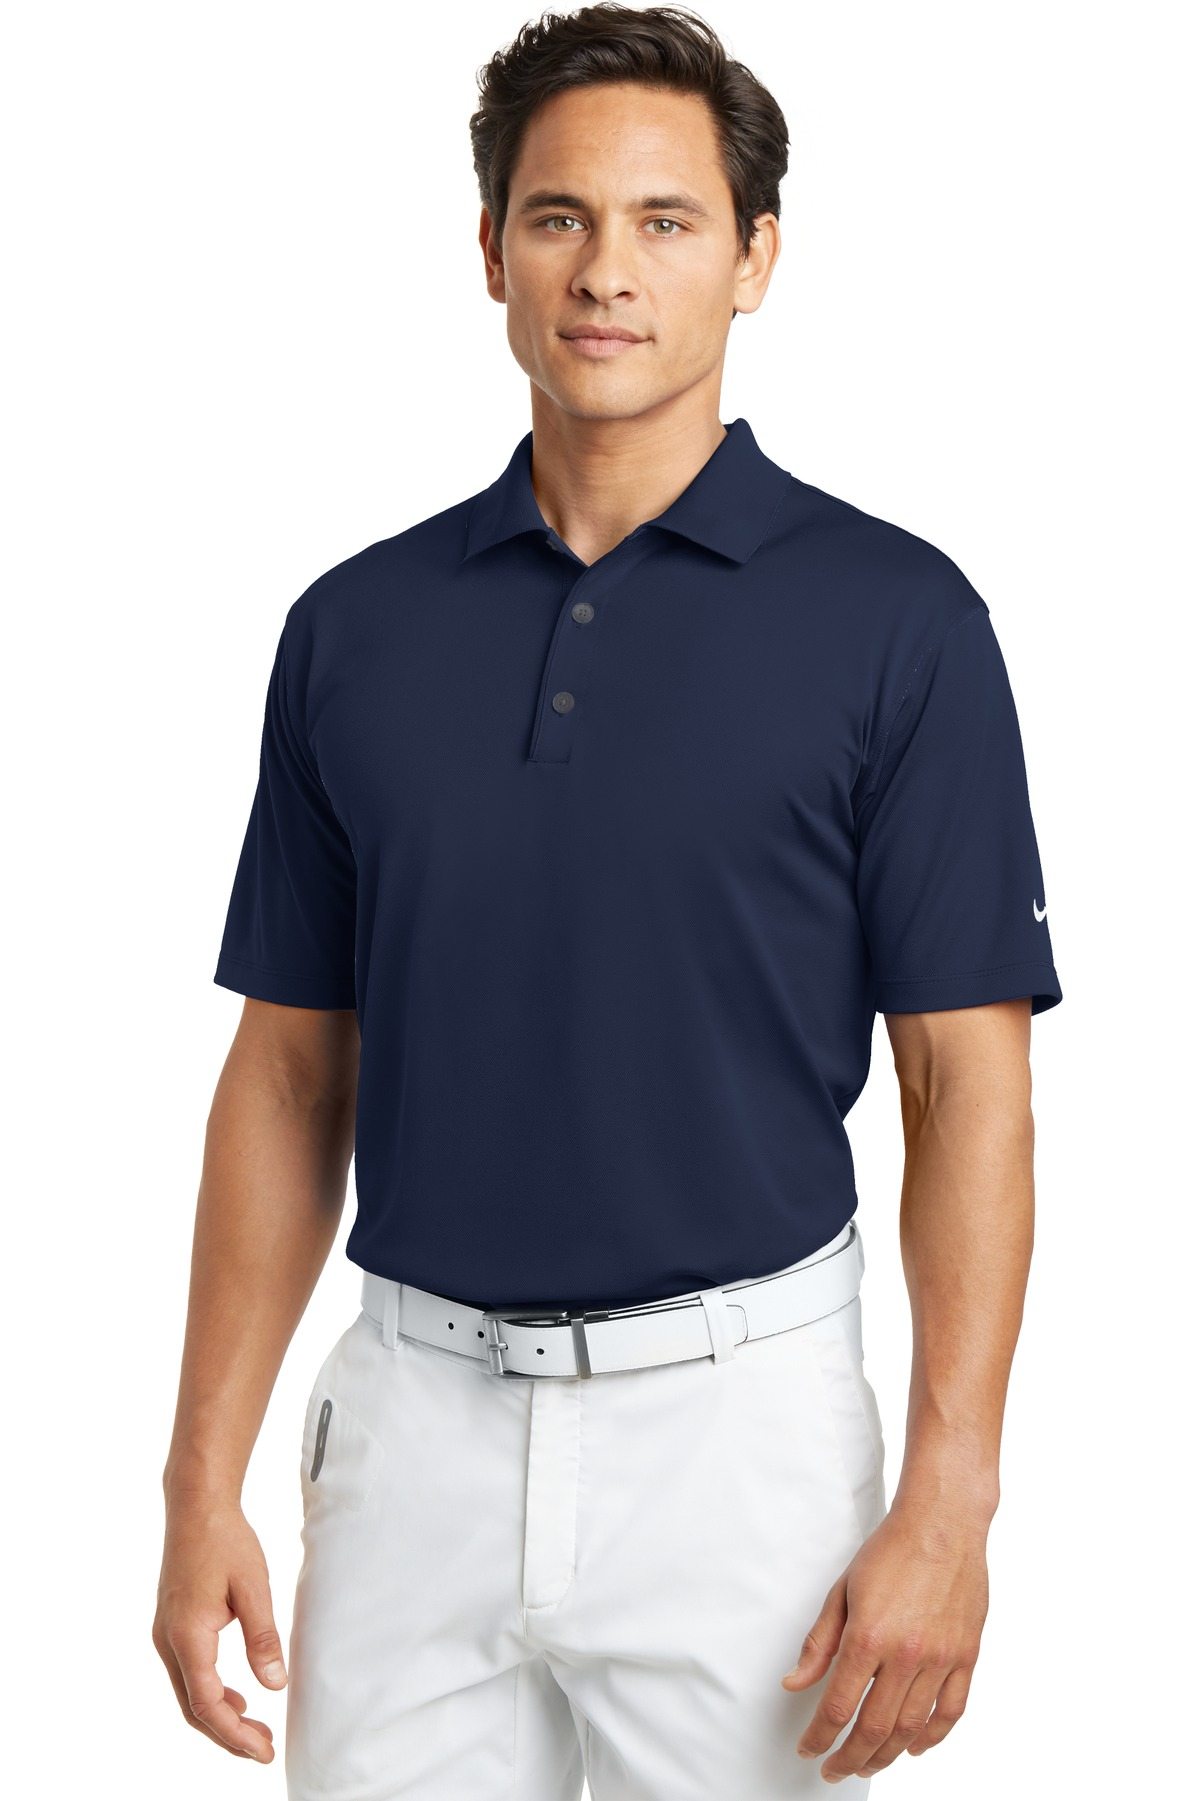 Nike Golf - Tech Basic Dri-FIT Polo.-Nike